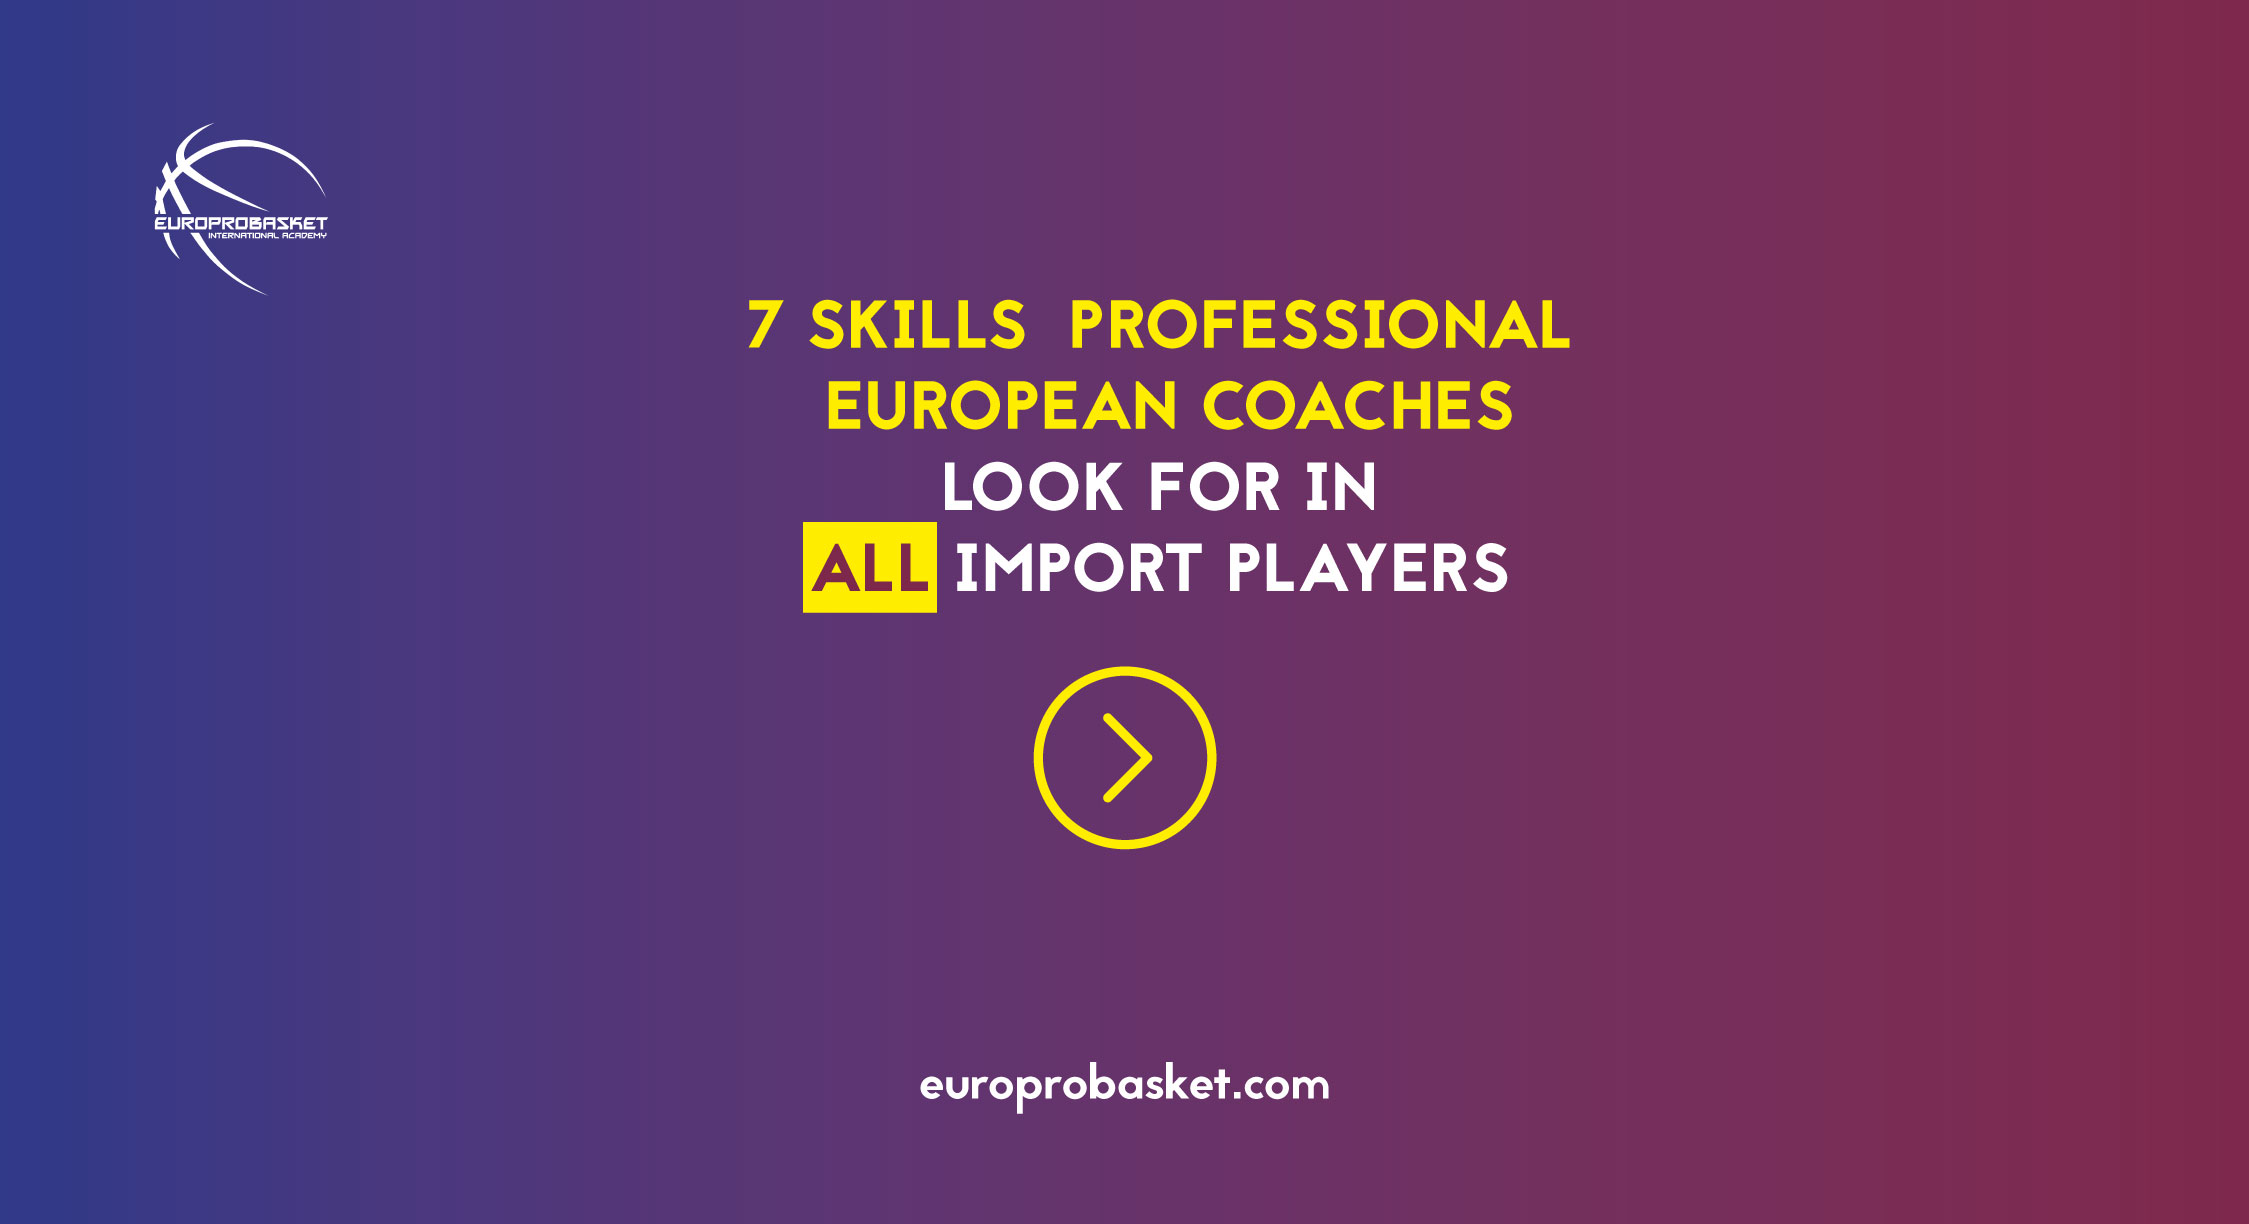 7 skills all import players should have